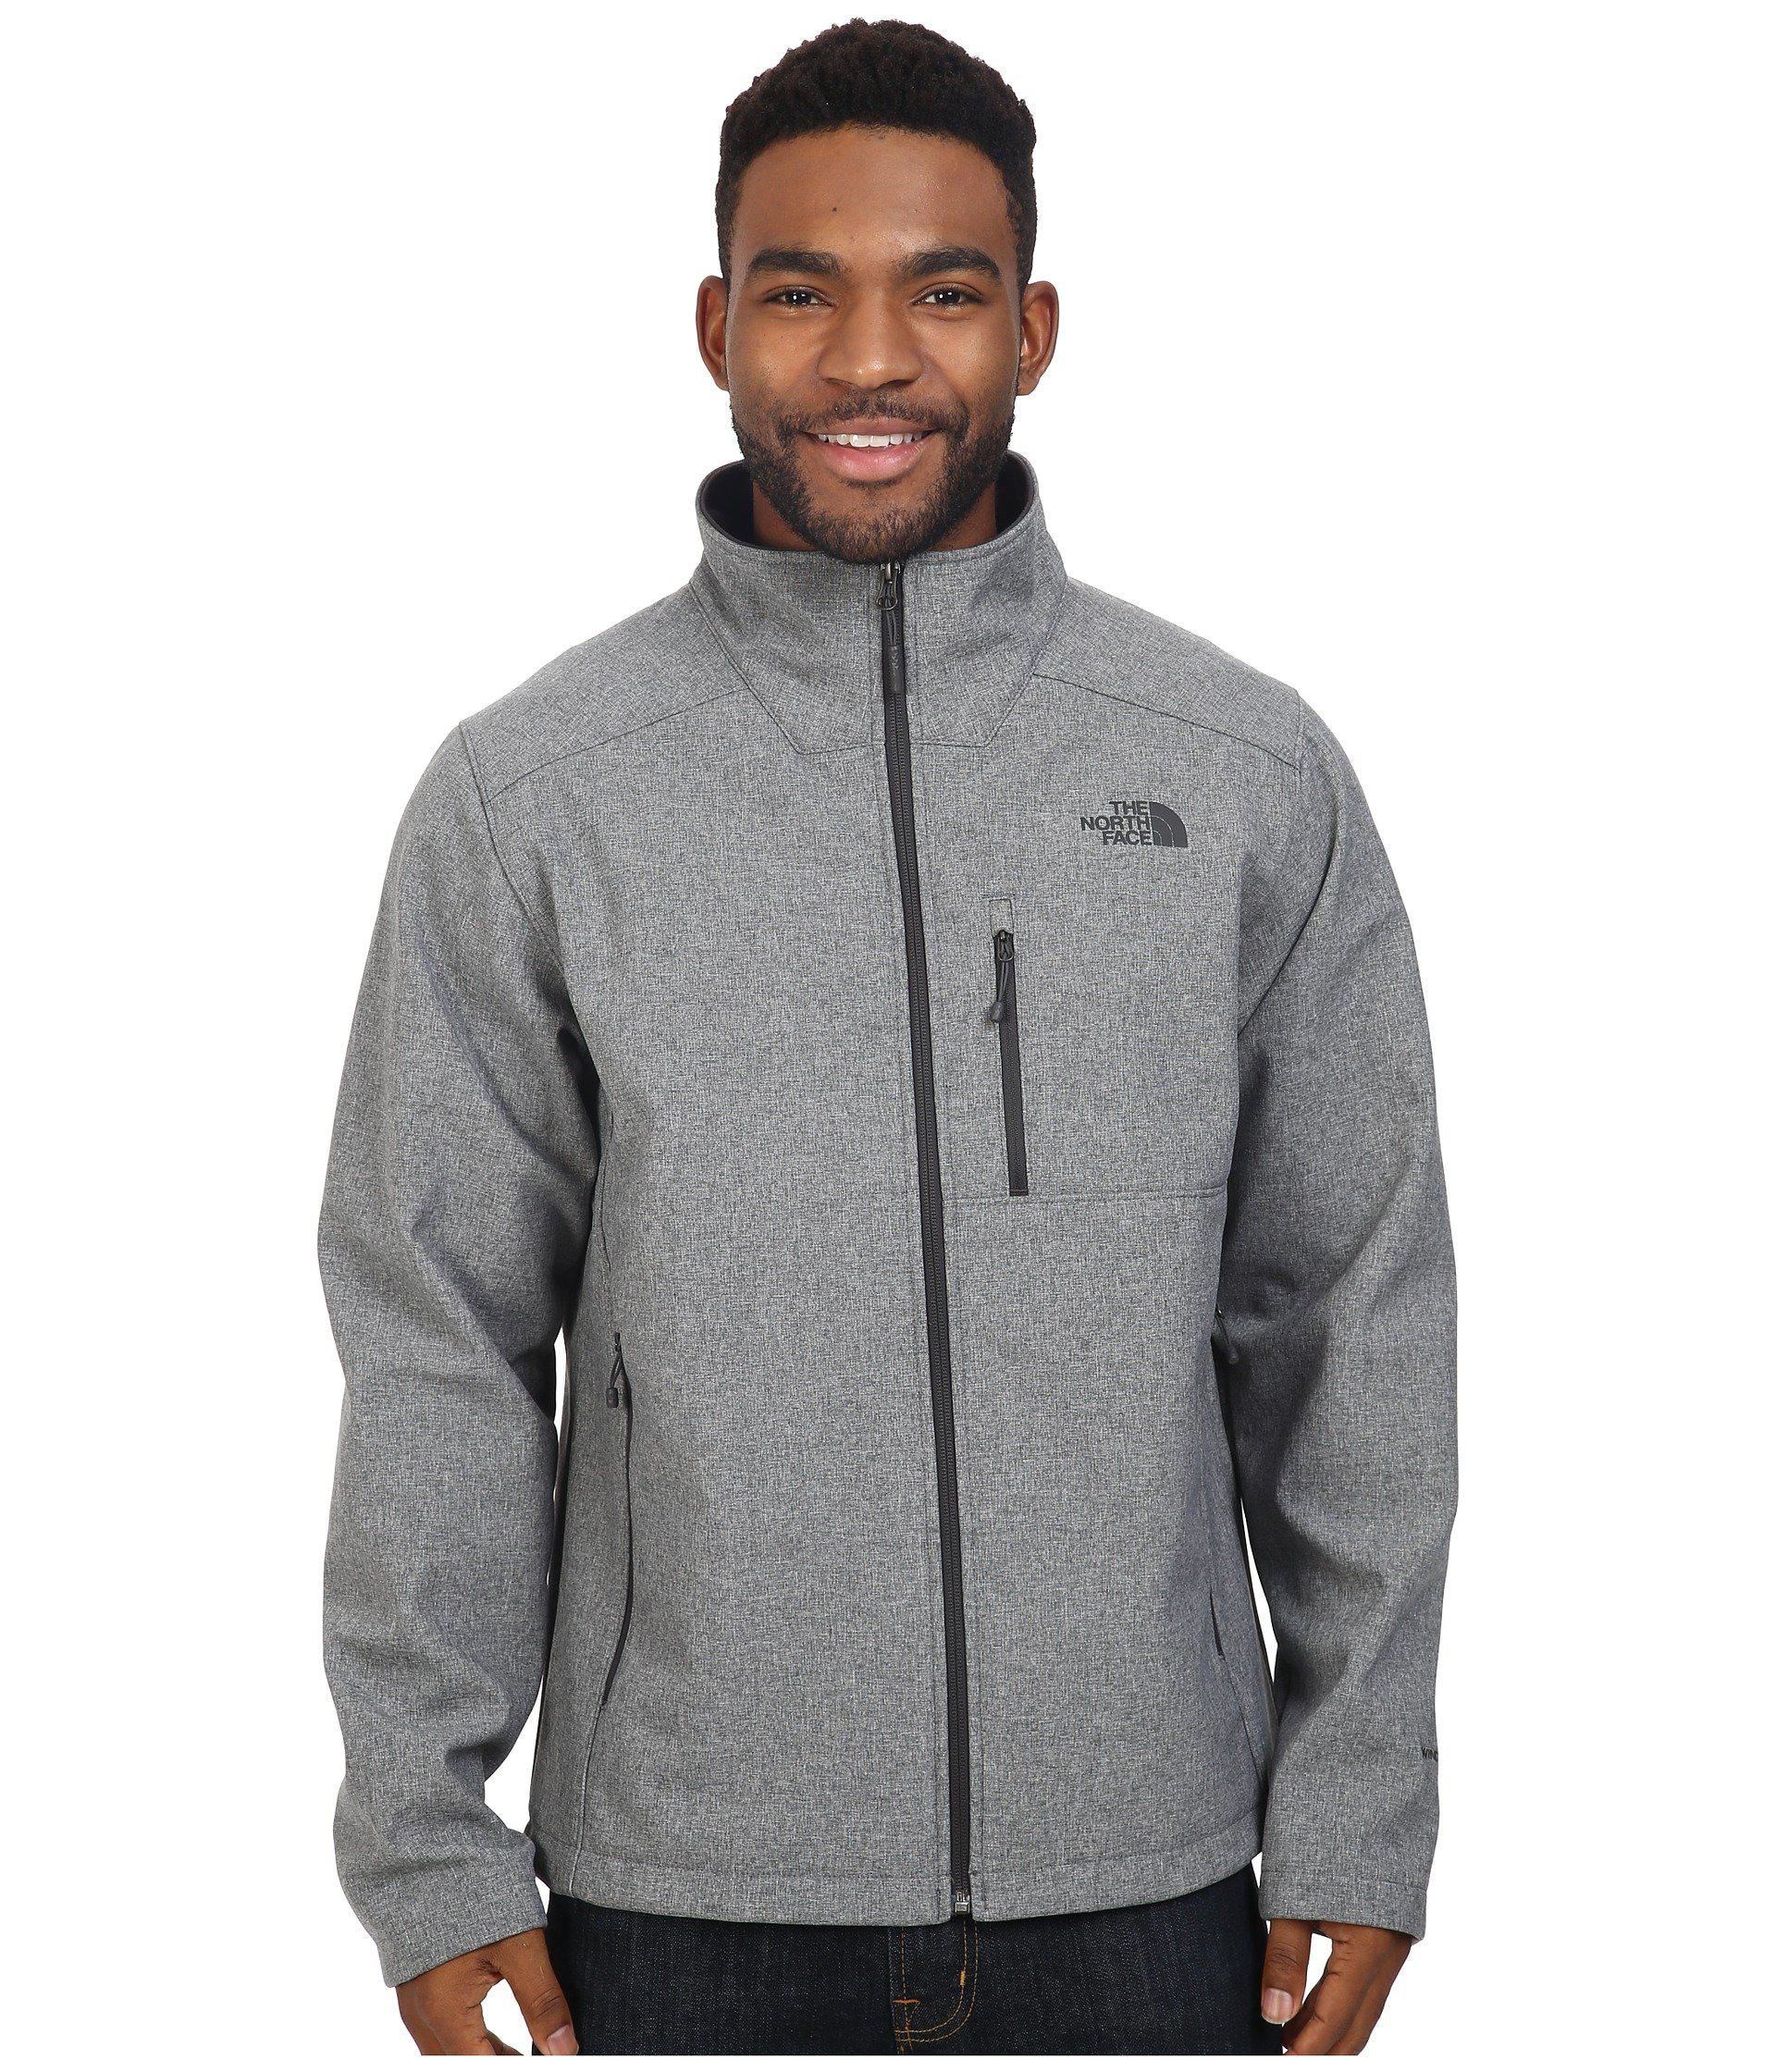 eaee1fcbade199 ... 2 jacket at zappos c4e51 3ffb4  spain the north face. gray apex bionic  e455b e2896